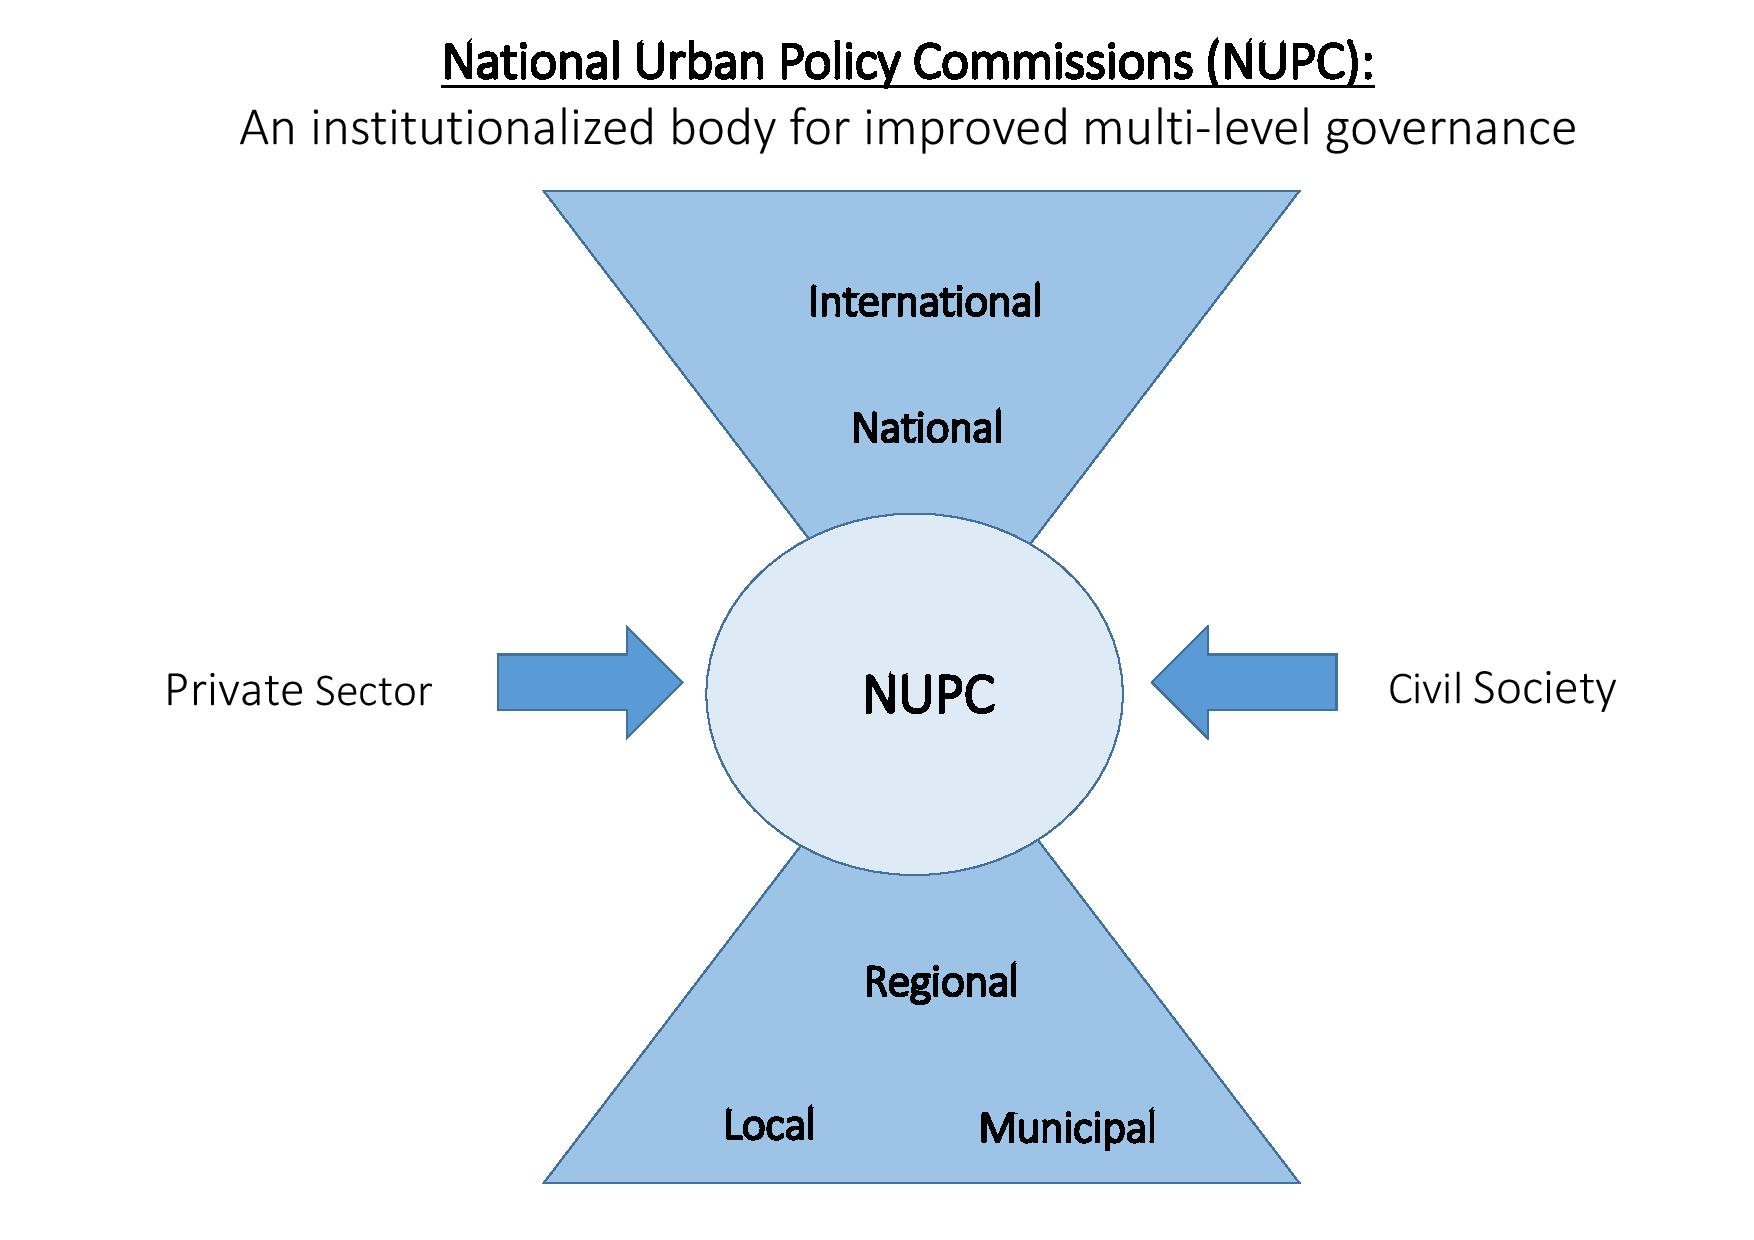 National Urban Policy Commissions